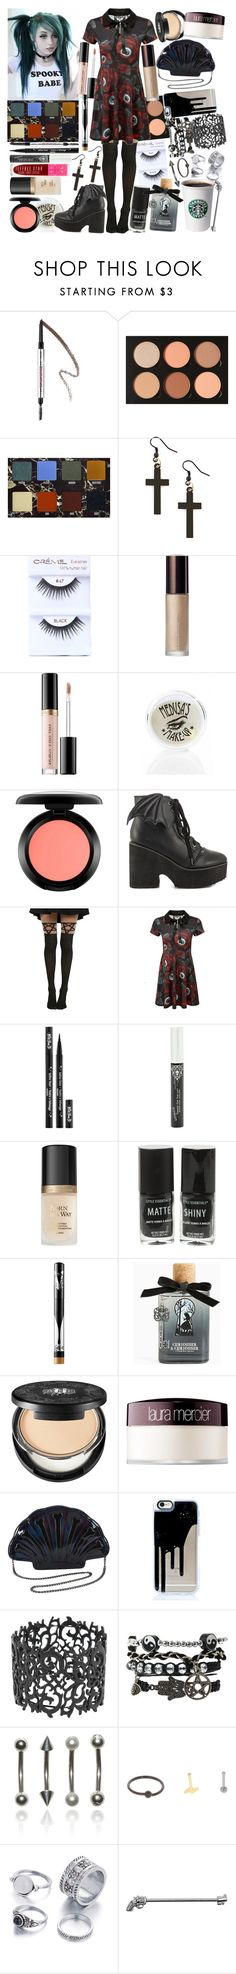 """""""You're playing ring around my head I wear you like a halo. You're a symphony, I'm just a sour note"""" by thelyricsmatter ❤ liked on Polyvore featuring Benefit, Anastasia Beverly Hills, Becca, Sephora Collection, Medusa's Makeup, MAC Cosmetics, Iron Fist, Killstar, Kat Von D and Jeffree Star"""